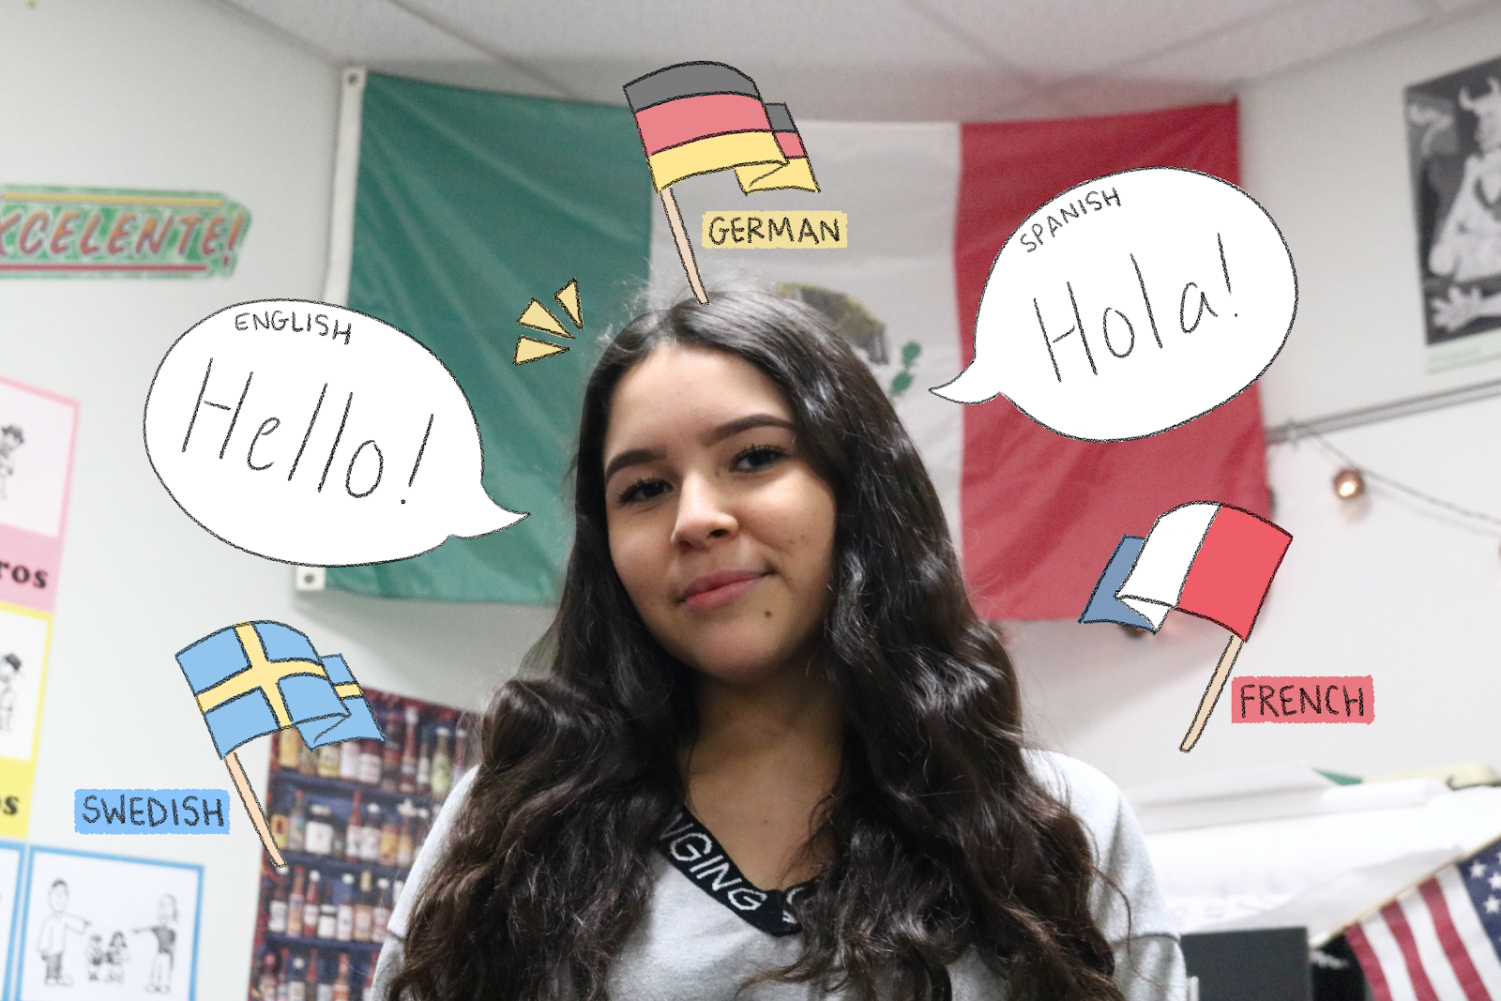 Coppell High School sophomore Jessica Schoen experiences various diverse cultures in her life. Schoen is fluent in German, Swedish, Spanish and English and is currently learning French.